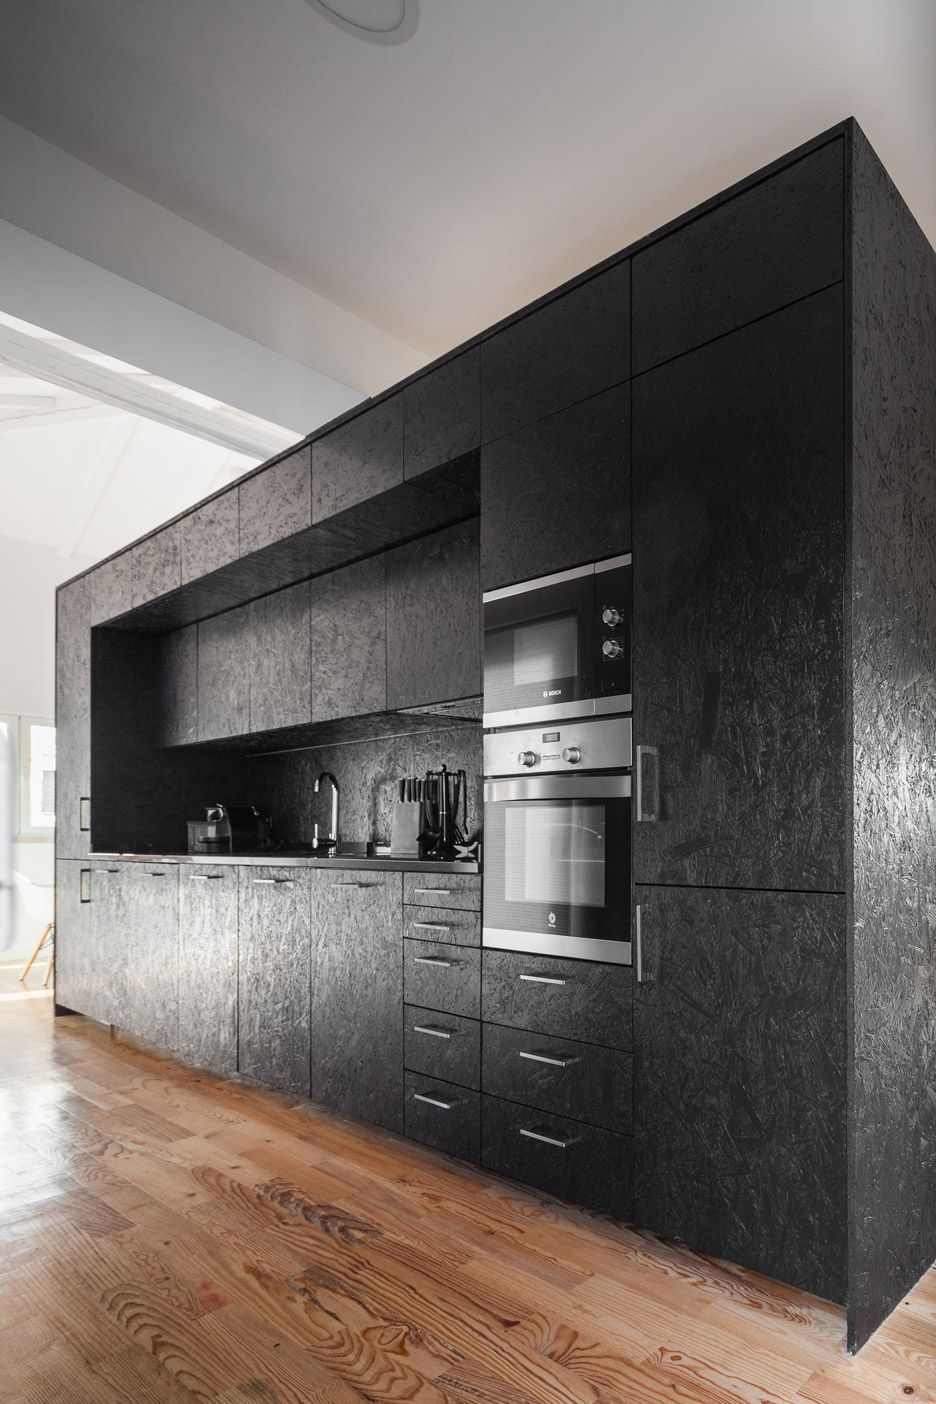 A Black Painted Osb Box Occupies A Kitchen On One Side In This Converted Barn Home In Portugal Osb Furniture Box Houses Kitchen Interior